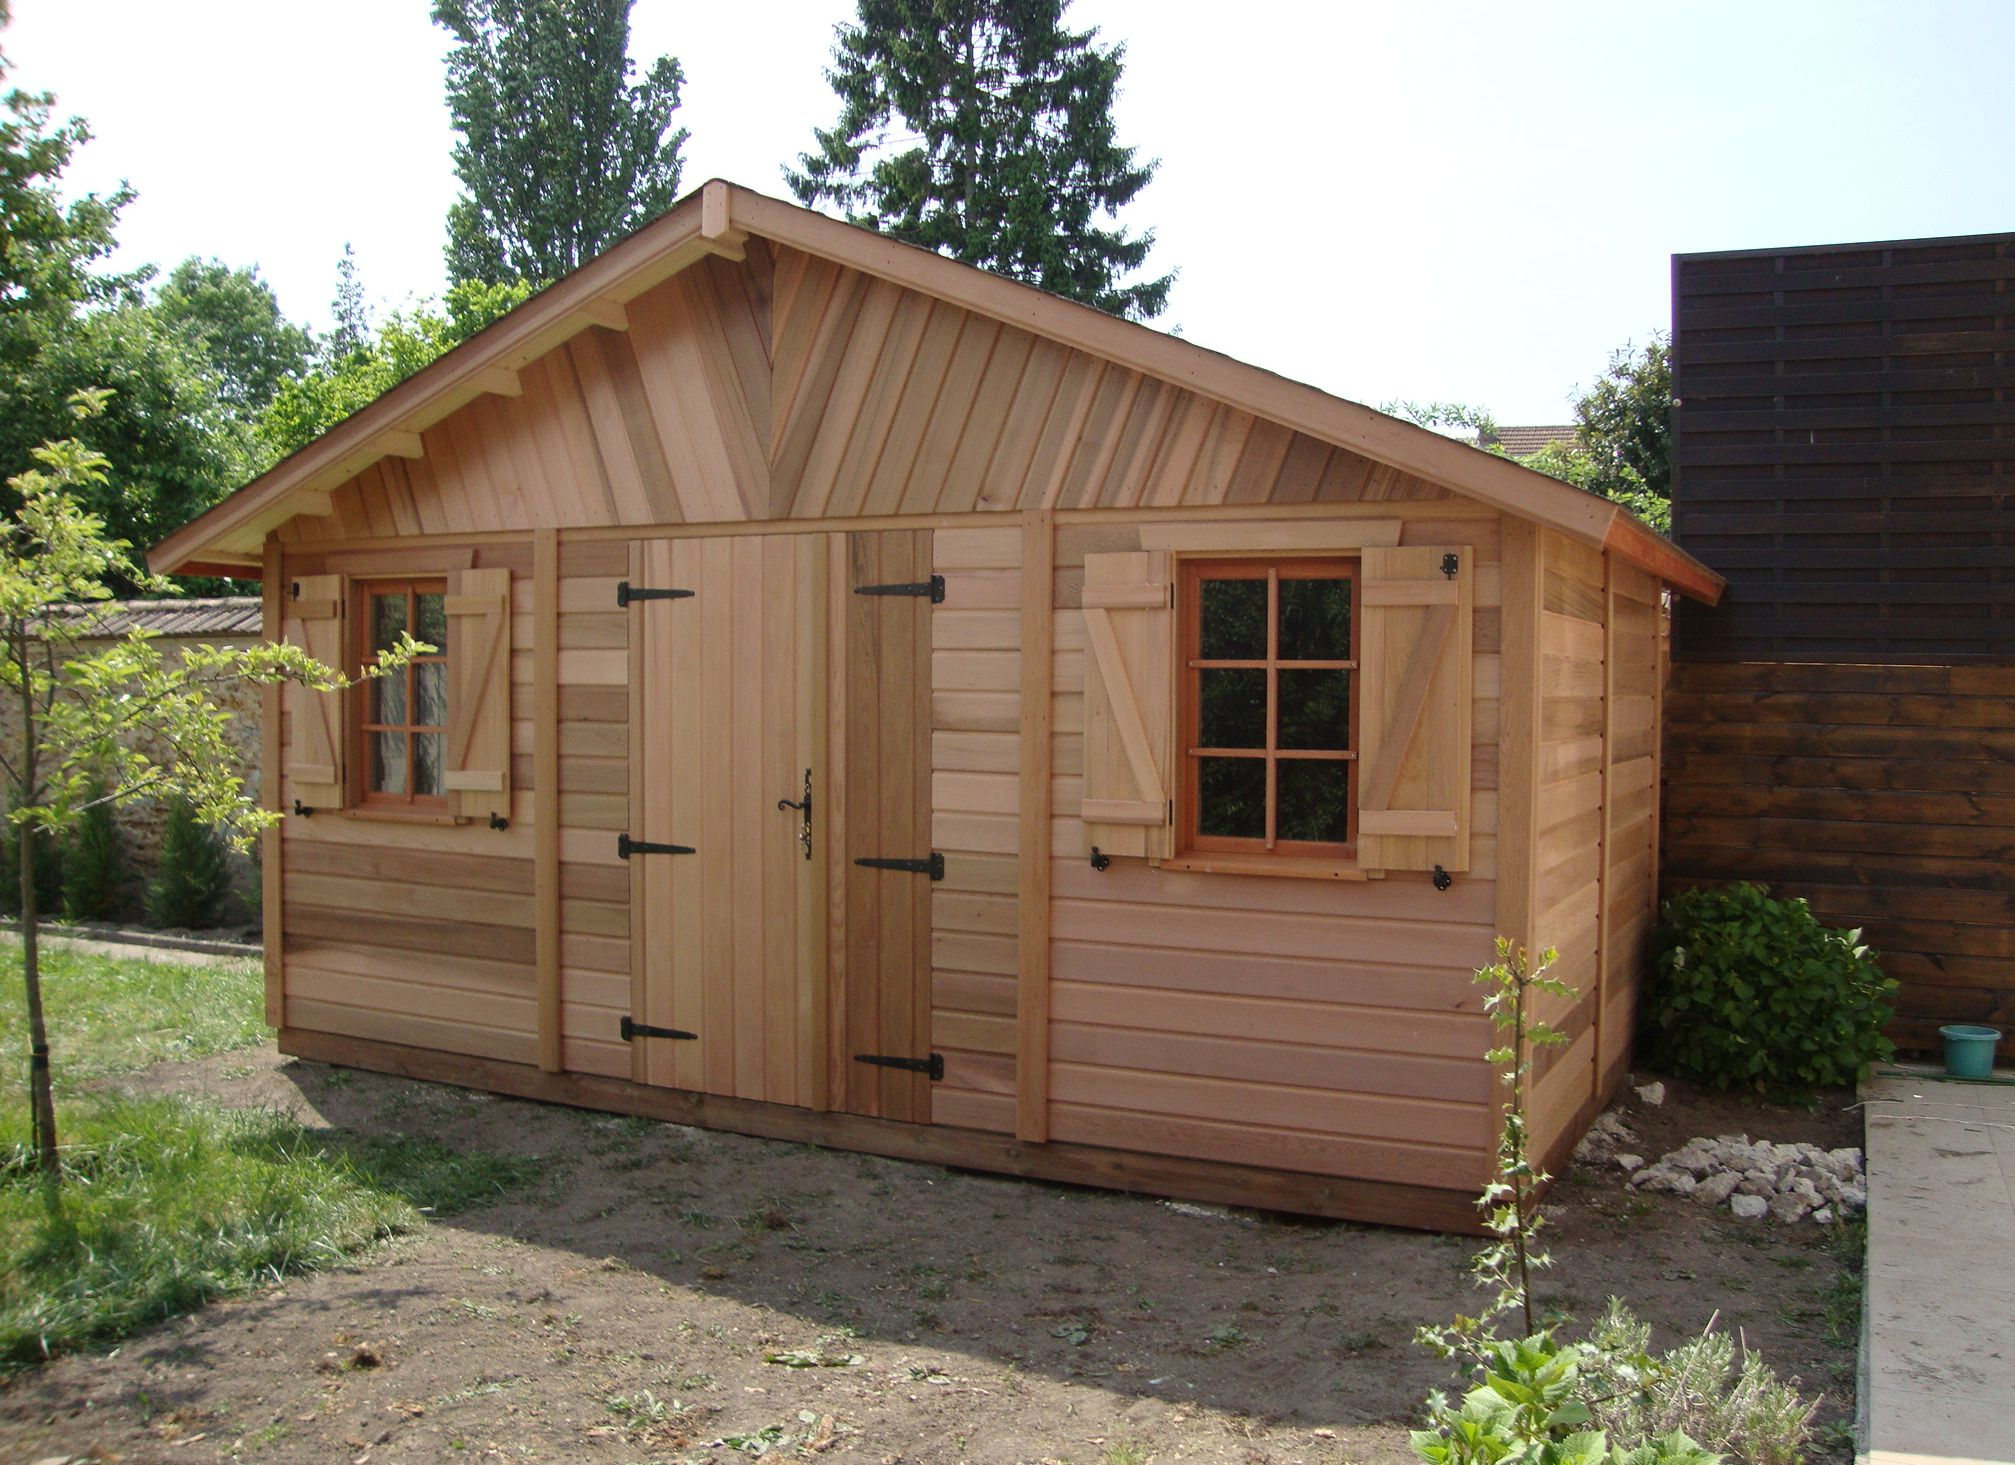 Abri de jardin savigny en red cedar cerisier for Porte de cabanon double